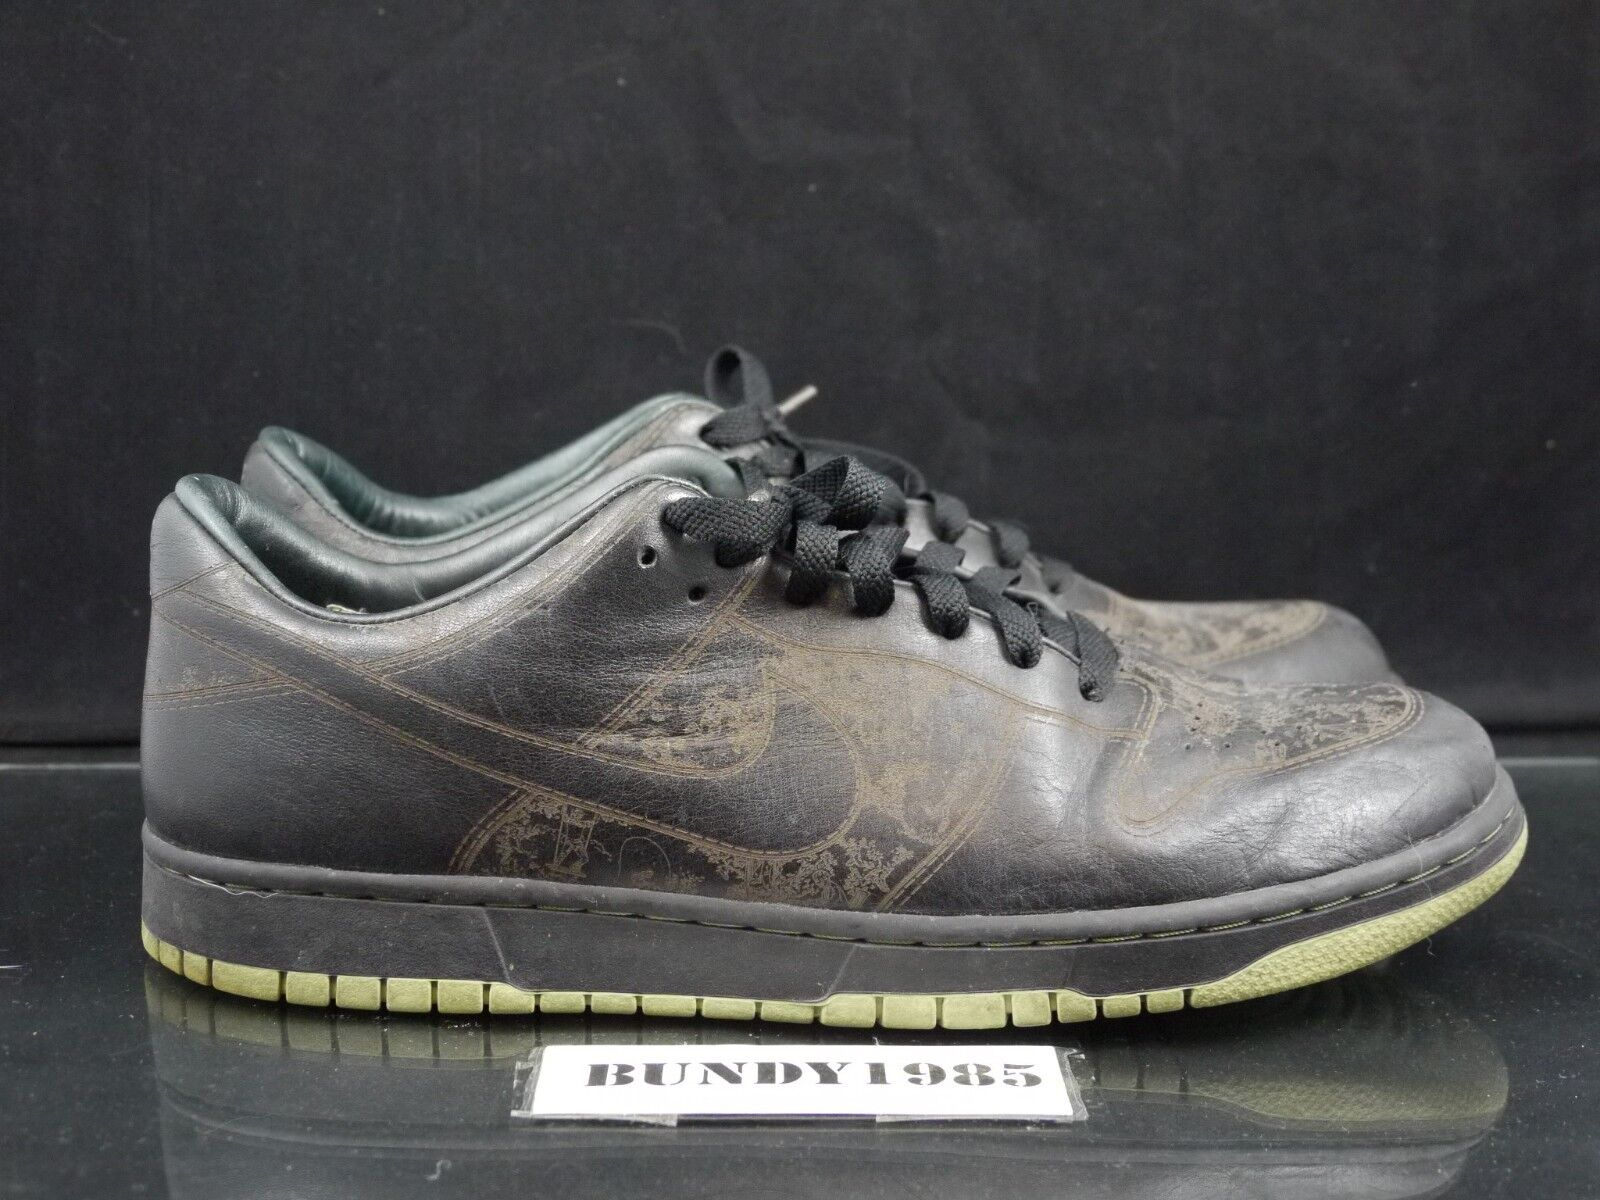 (P) 312424 001 Nike Dunk Low 1 Piece Laser black faded green Men's SZ 13